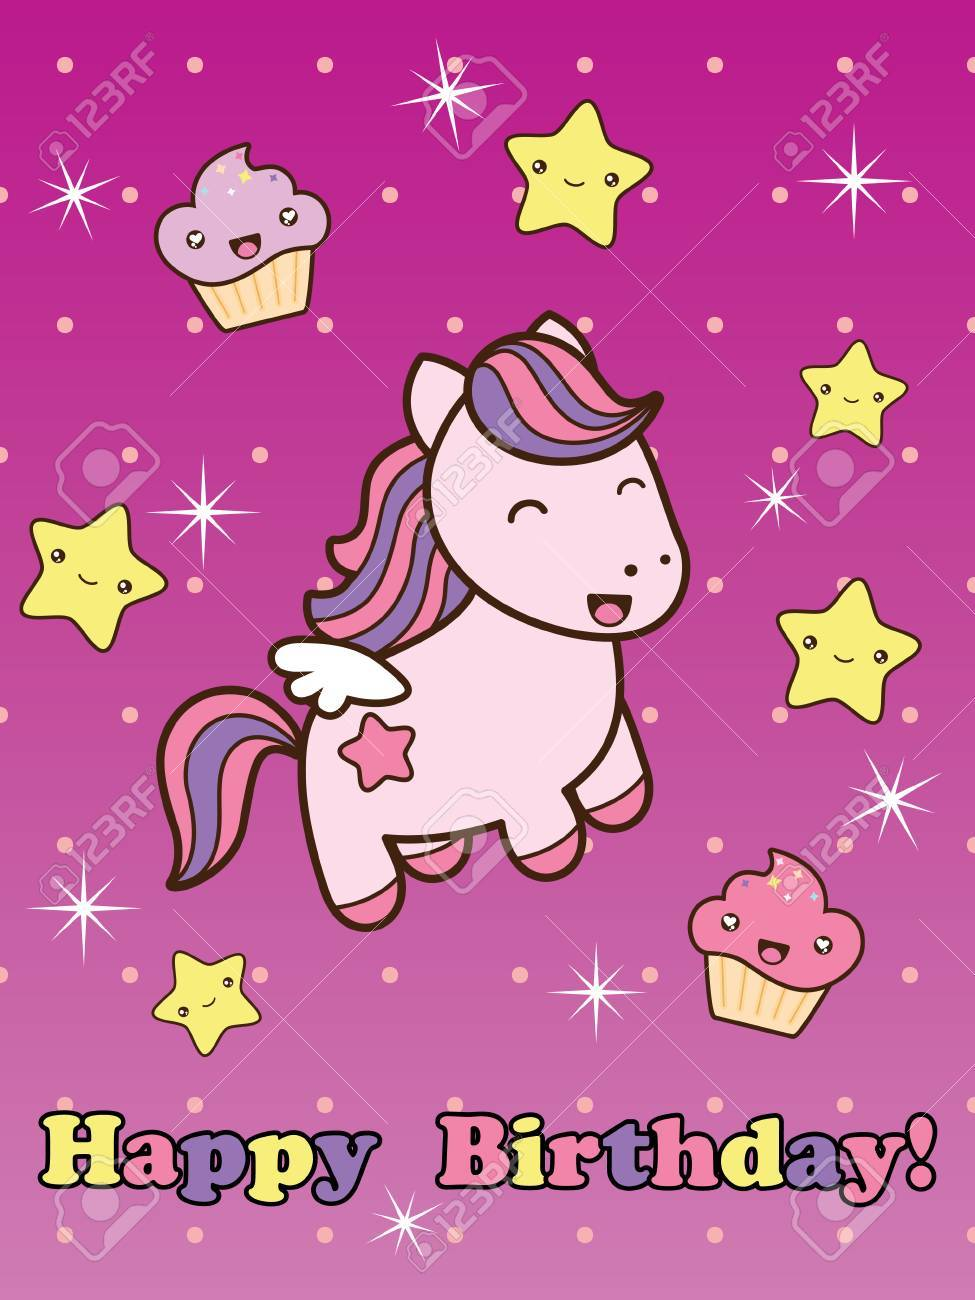 Happy Birthday Card With Cute Smiling Cartoon Horse Vector Illustration Childish Background